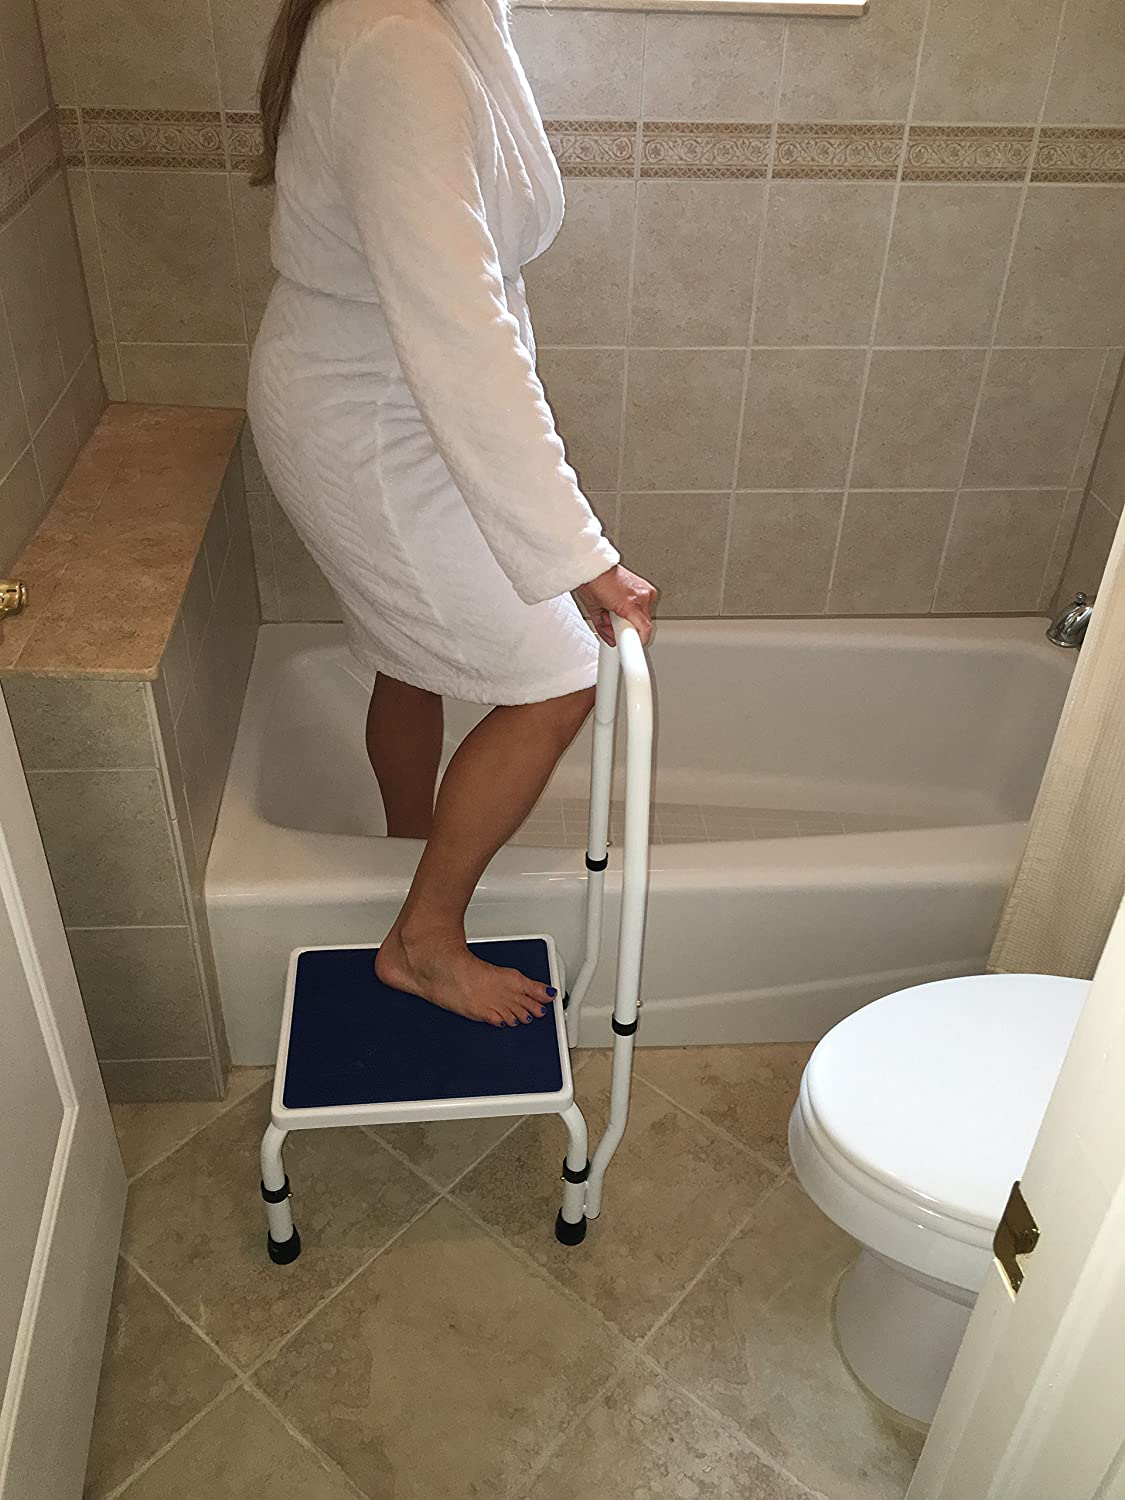 Amazon.com AdjustaStep(tm) Deluxe Step Stool/Footstool with Handle/Handrail Height Adjustable. 2 products in 1. Modern white/blue design. New for 2016. & Amazon.com: AdjustaStep(tm) Deluxe Step Stool/Footstool with ... islam-shia.org